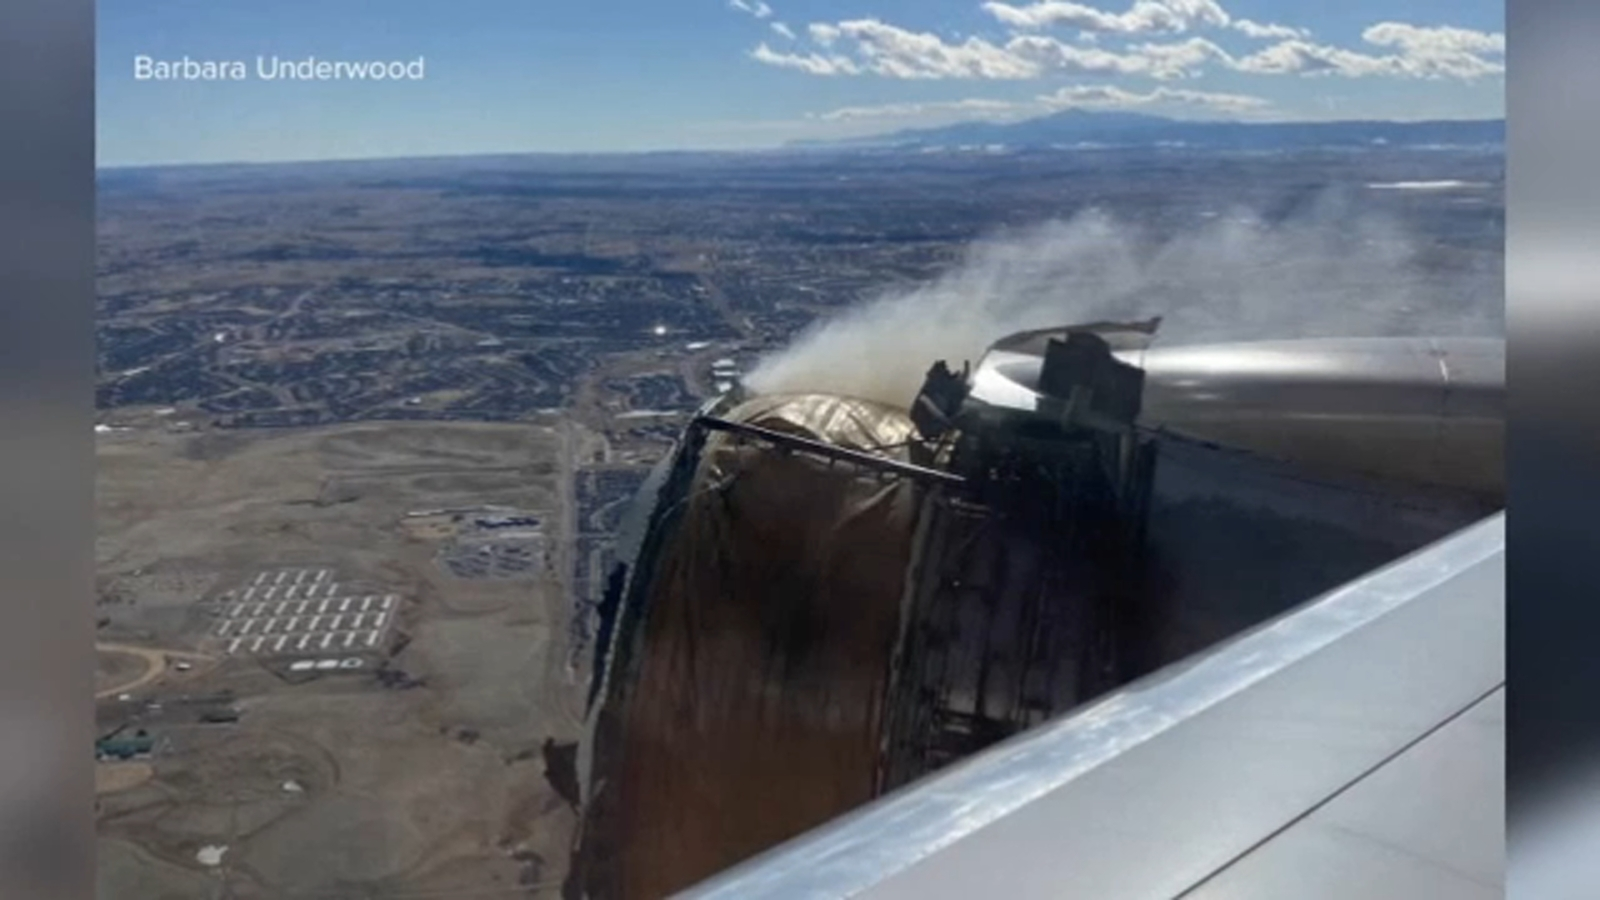 United Airlines engine failed after pilots throttled up to minimize turbulence, NTSB report says